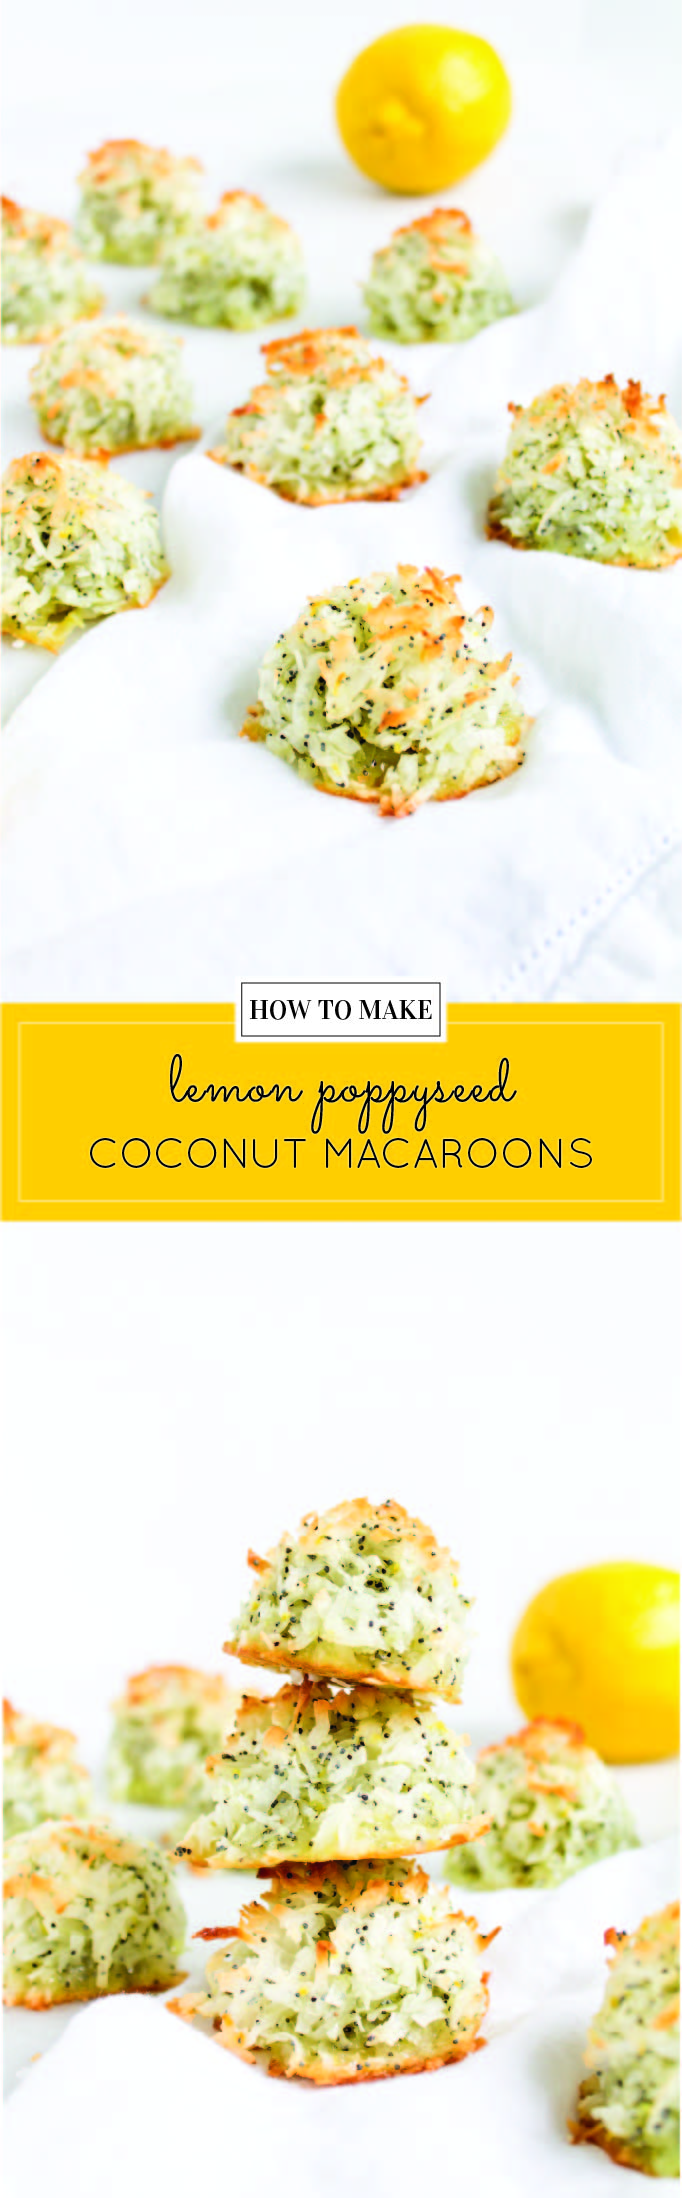 Coconut macaroons have the perfect balance of textures - crunchy on the outside, but moist and chewy on the inside. This lemon poppy seed version of the classic flourless cookie is packed with fresh, zesty citrus flavor for a wonderful spring or Passover treat! Click through for the recipe. | glitterinc.com | @glitterinc - Lemon Poppyseed Coconut Macaroons Recipe by popular North Carolina foodie blog Glitter, Inc.